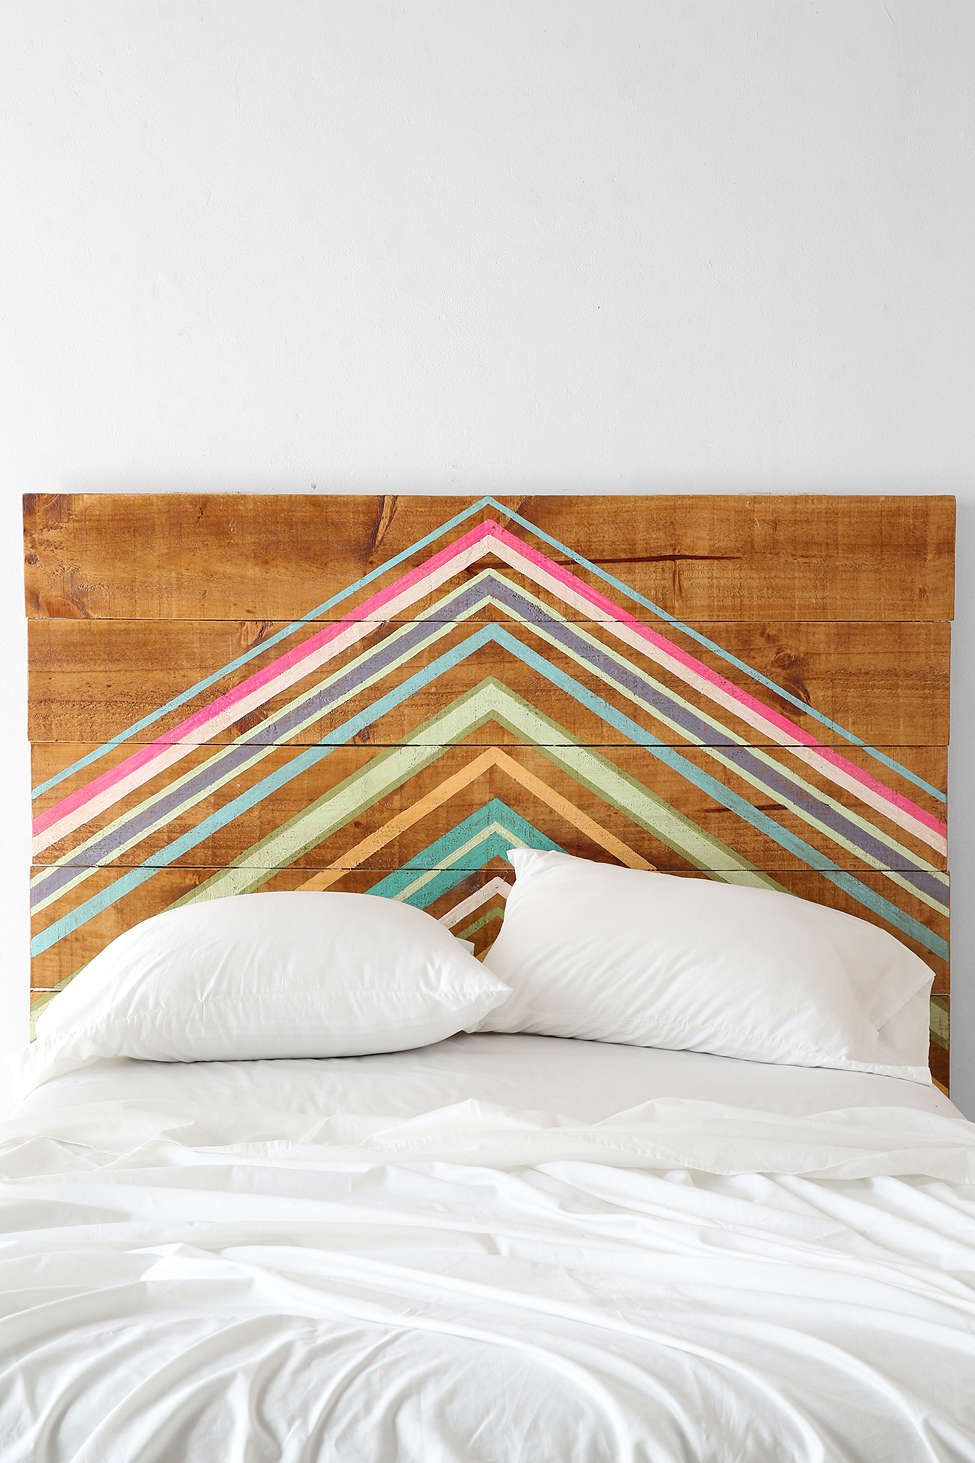 Diy Full Length Floor Mirror Headboards For Beds Painted Beds Furniture